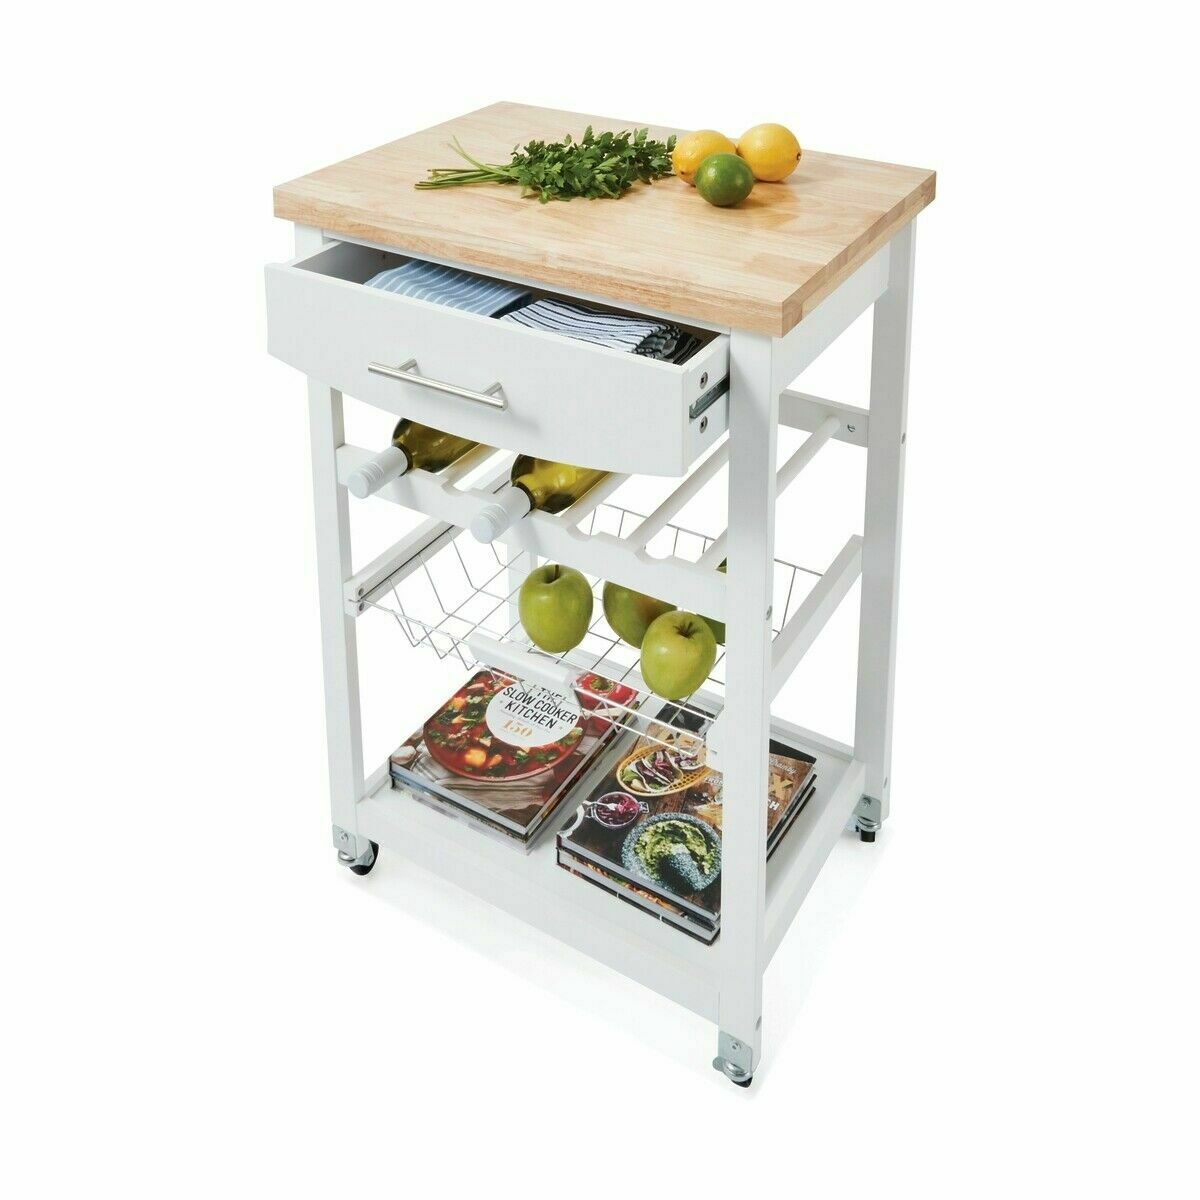 New Wooden Kitchen Utility Trolley Cart Drawer 2 Shelves Cabinet Rack White